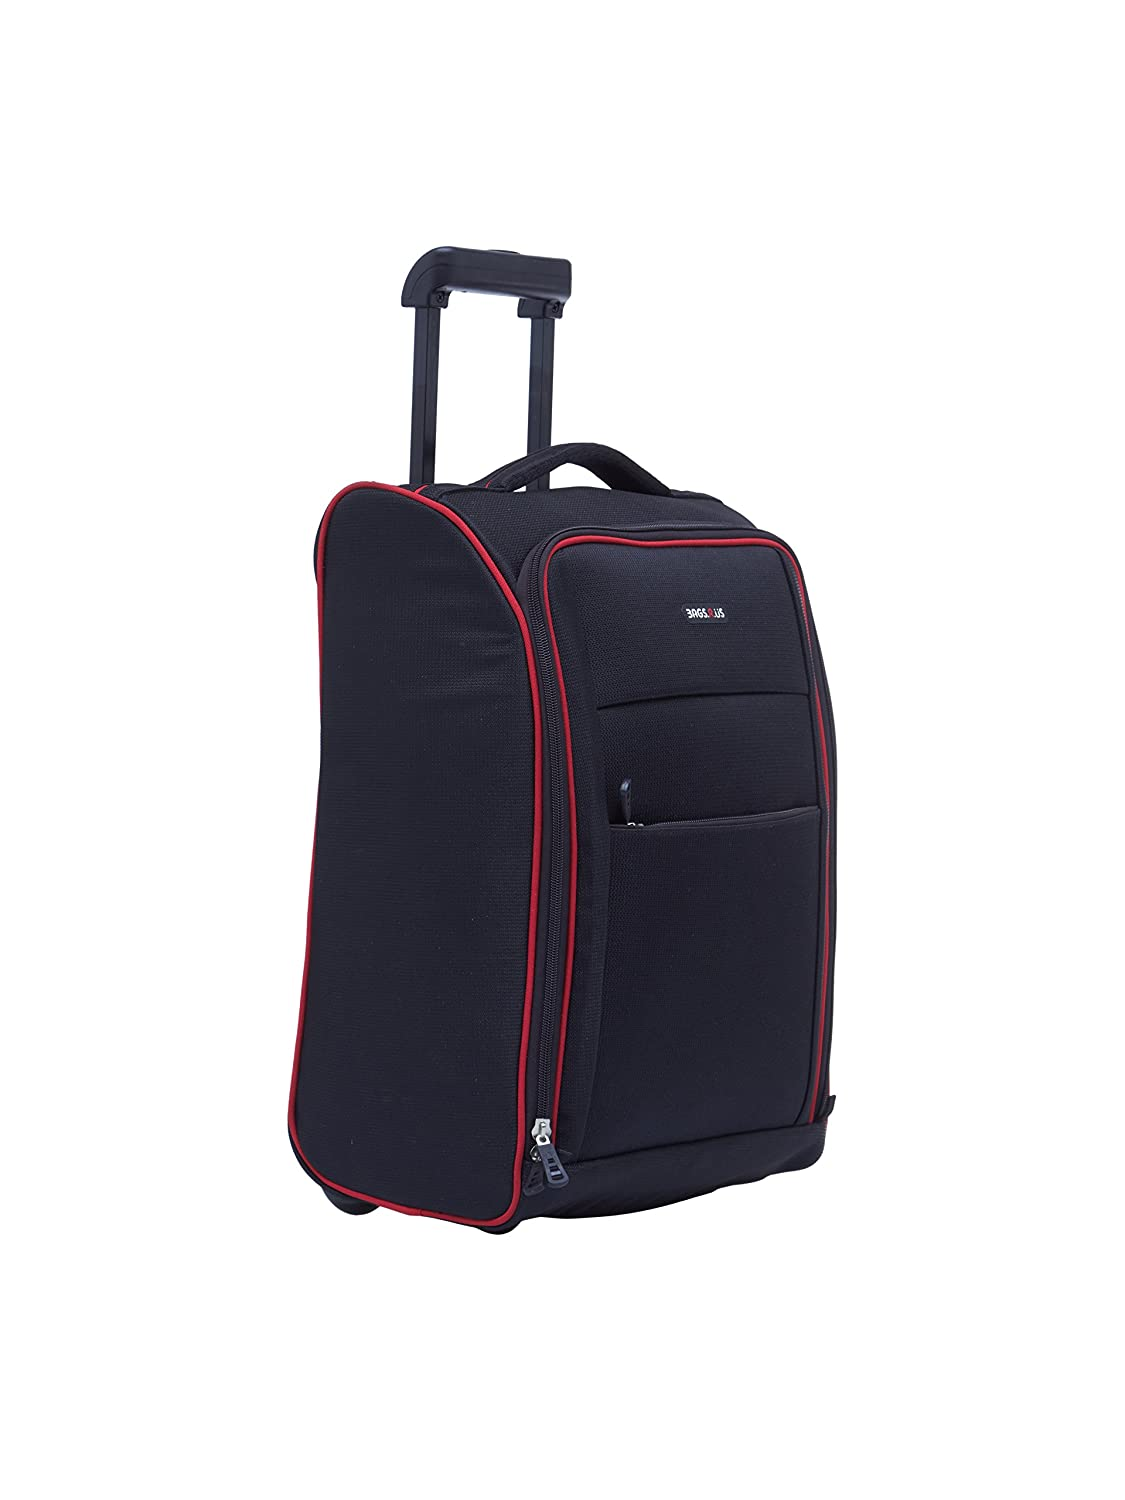 44709e2e0de1 BagsRUs Polyester 19 cms Black Softsided Cabin Luggage (CA113FBL)   Amazon.in  Bags